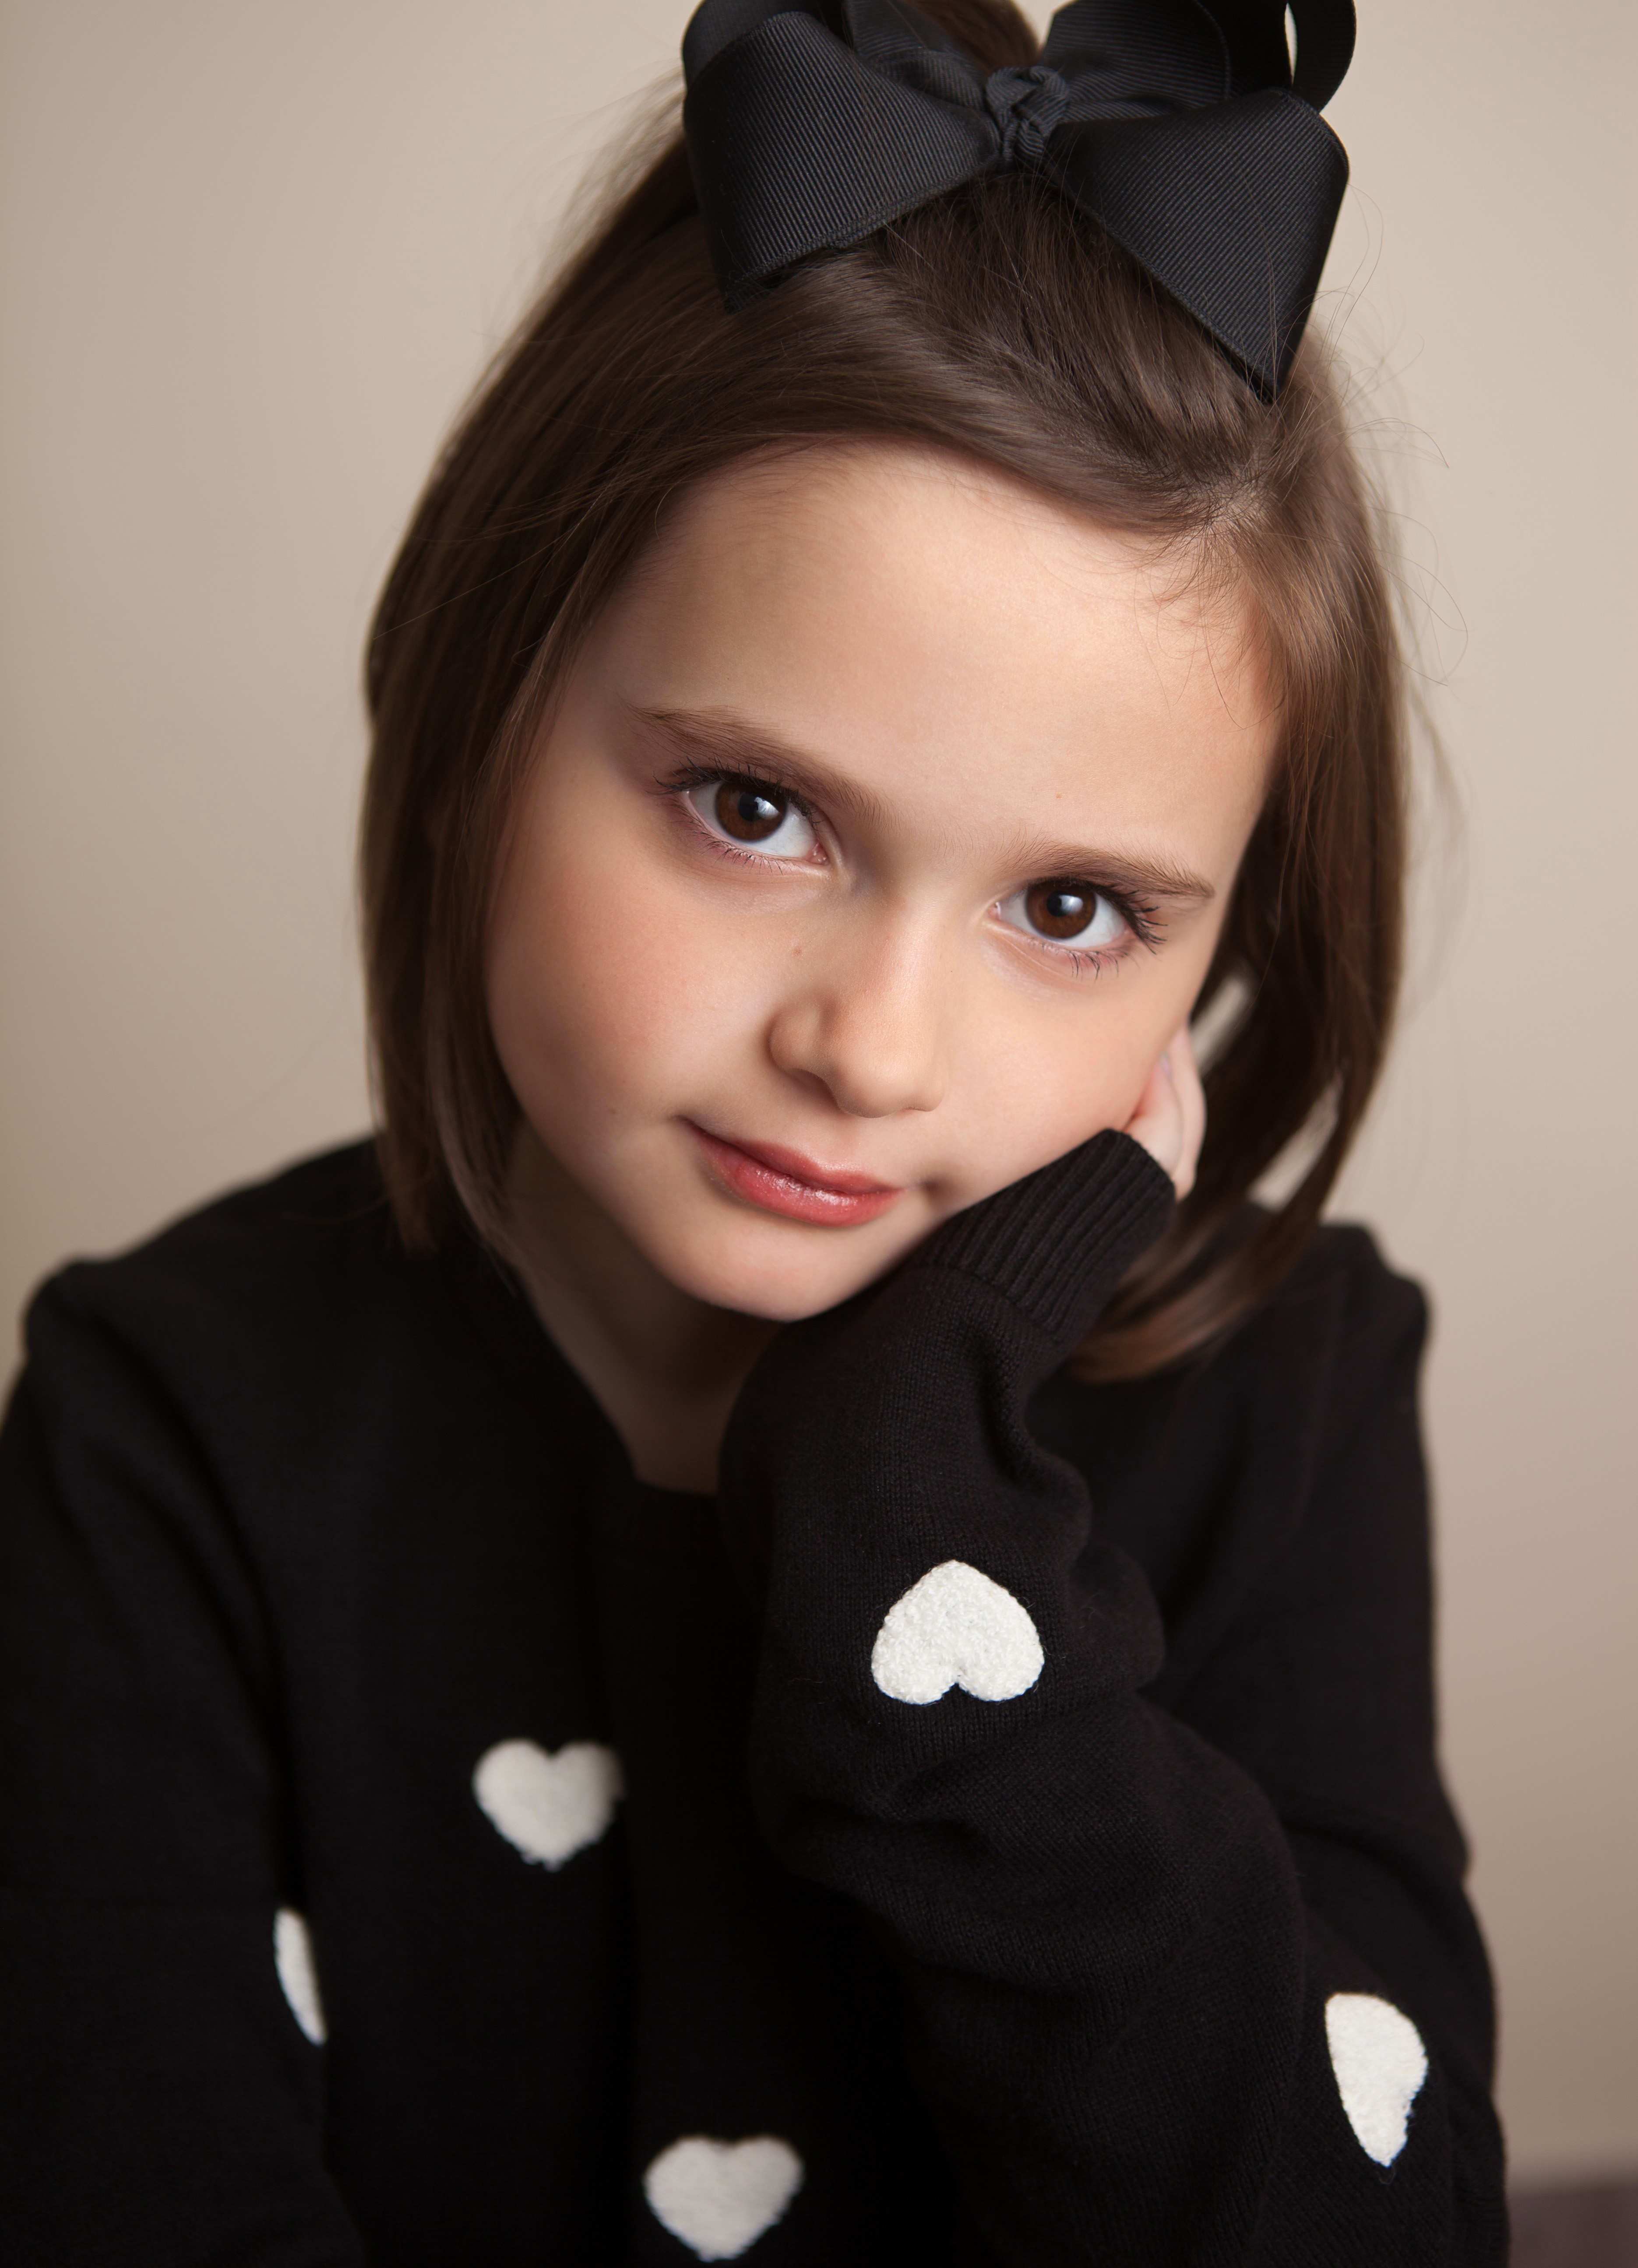 Headshot of Columbus Child Actor, Elizabeth Howlett